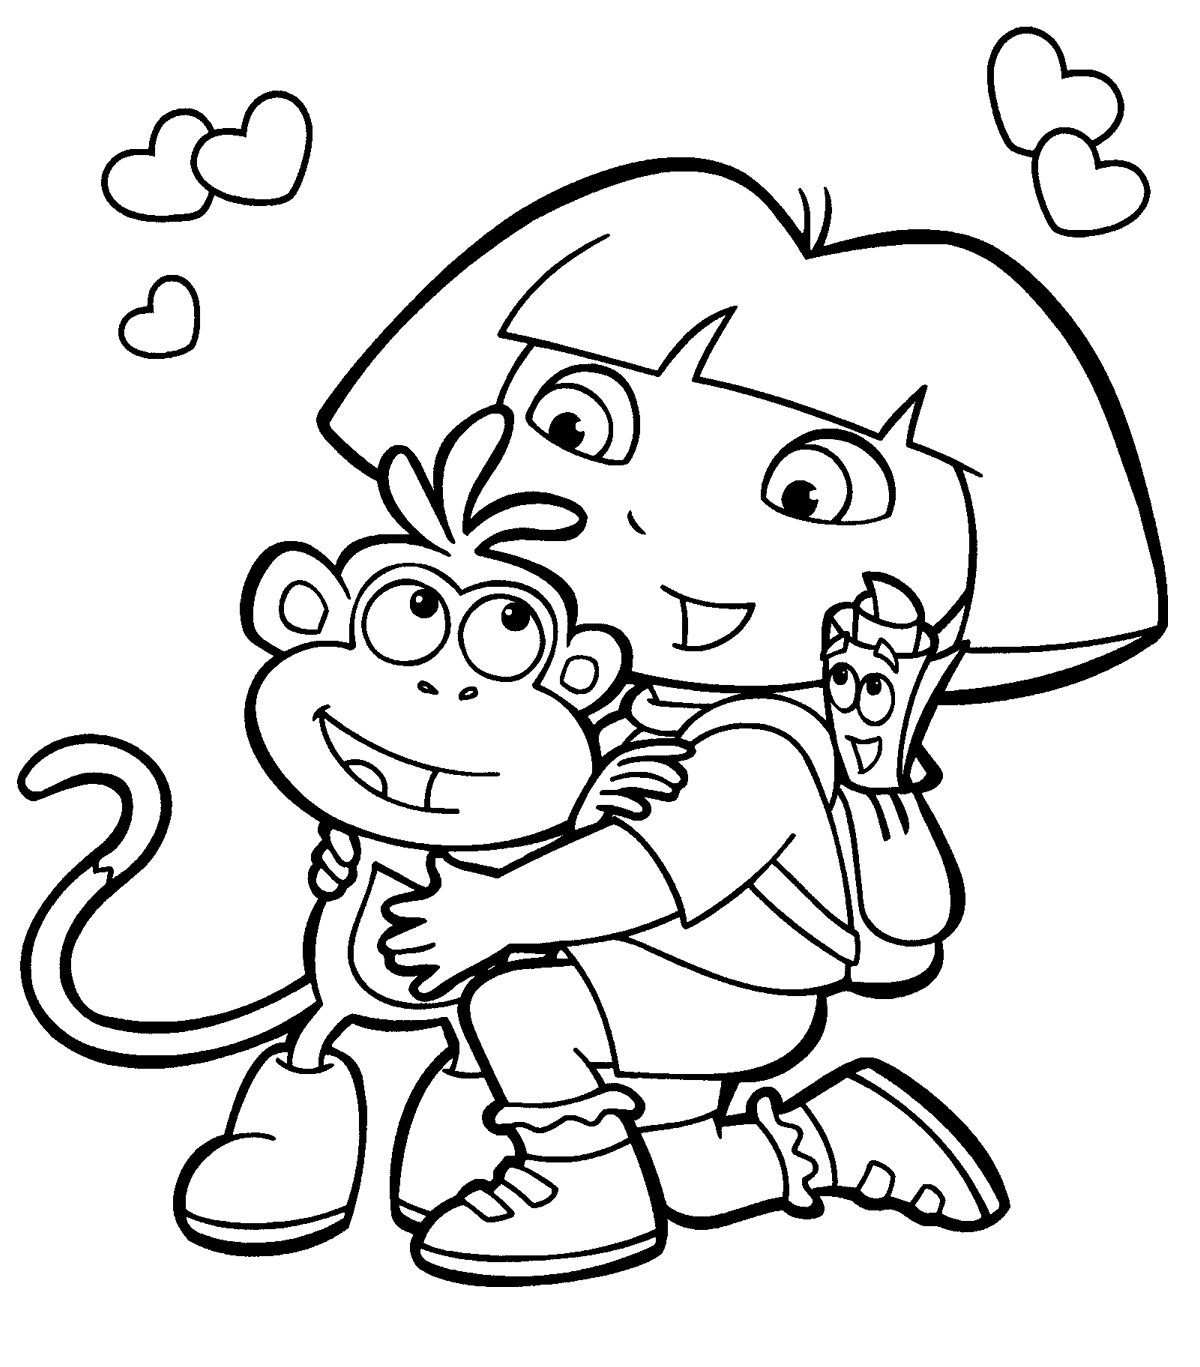 Disney valentine coloring sheets free coloring pages for Coloring page valentine